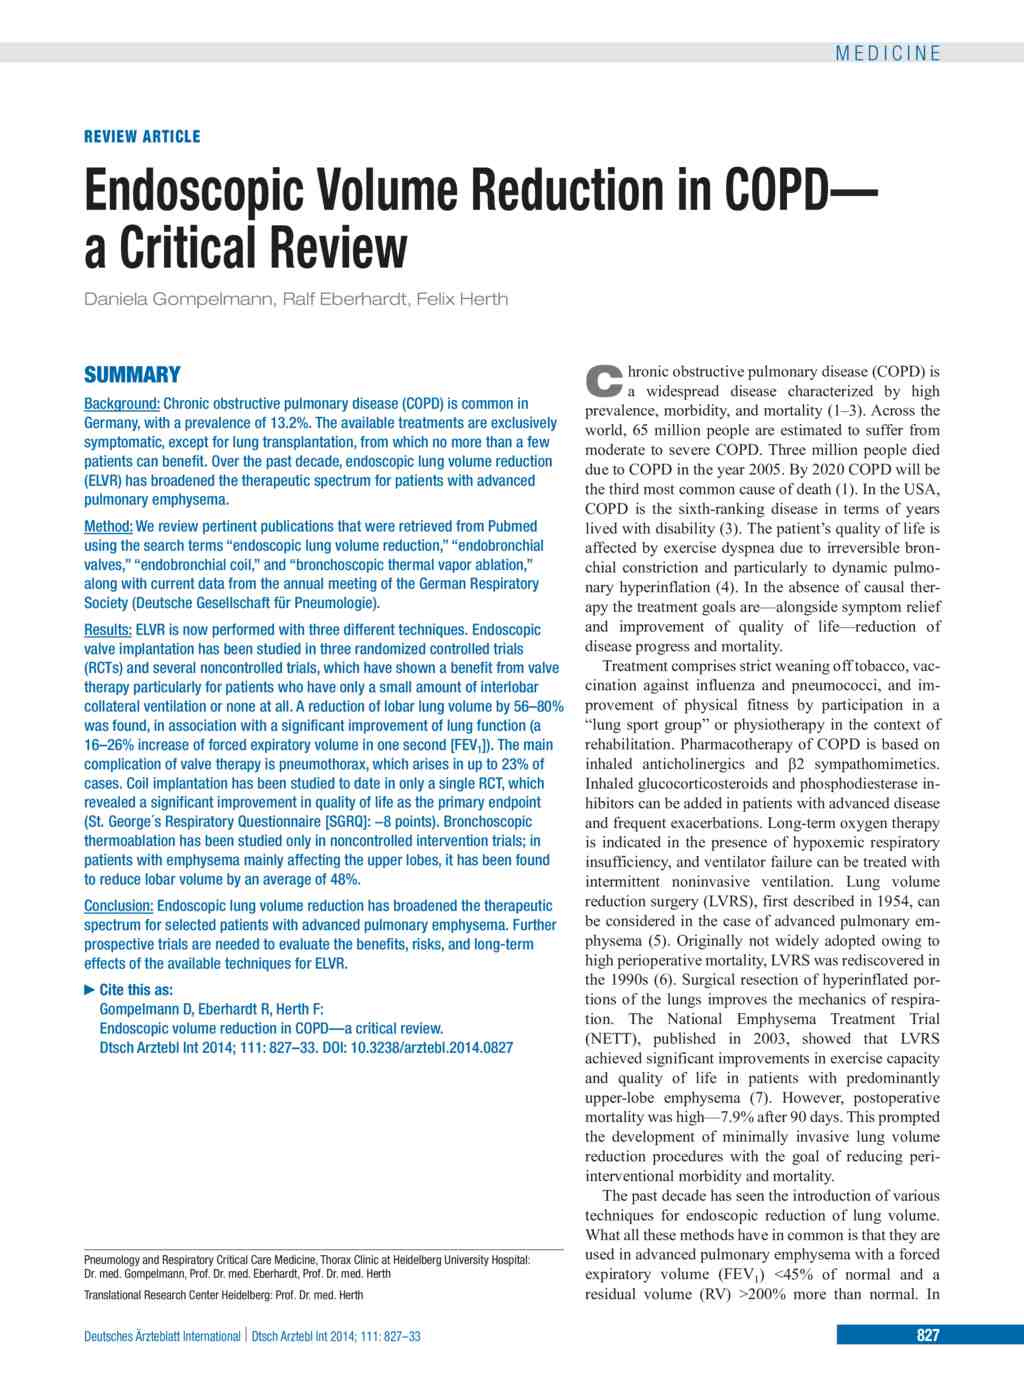 Endoscopic Volume Reduction in COPD (05 12 2014)